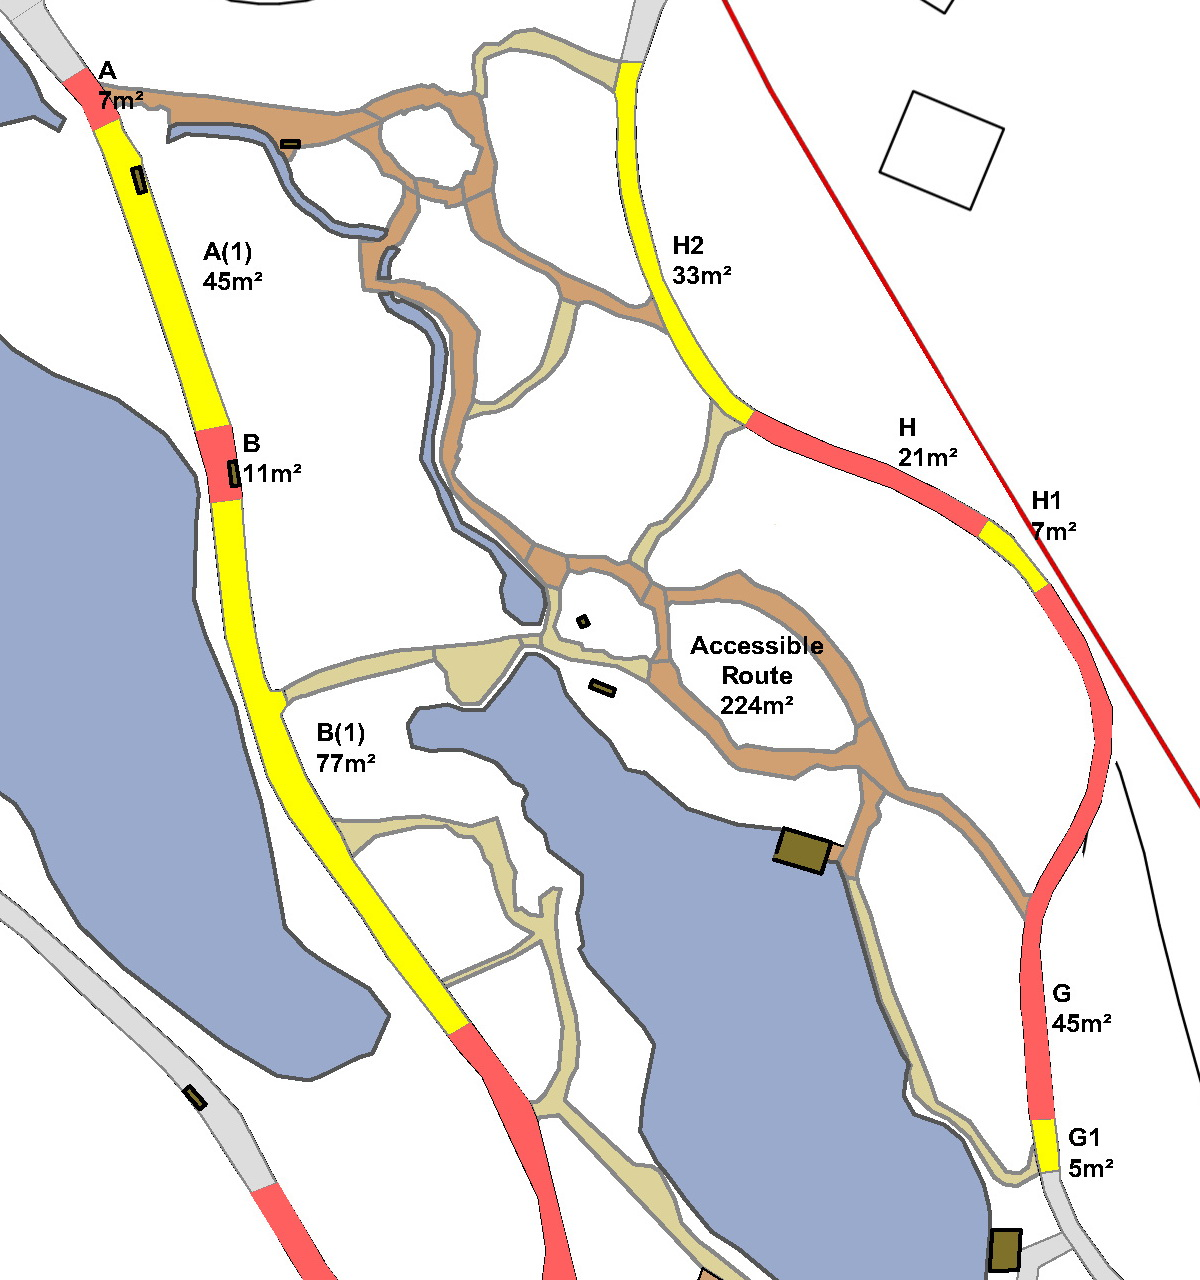 Detail of Path plan showing accessible route